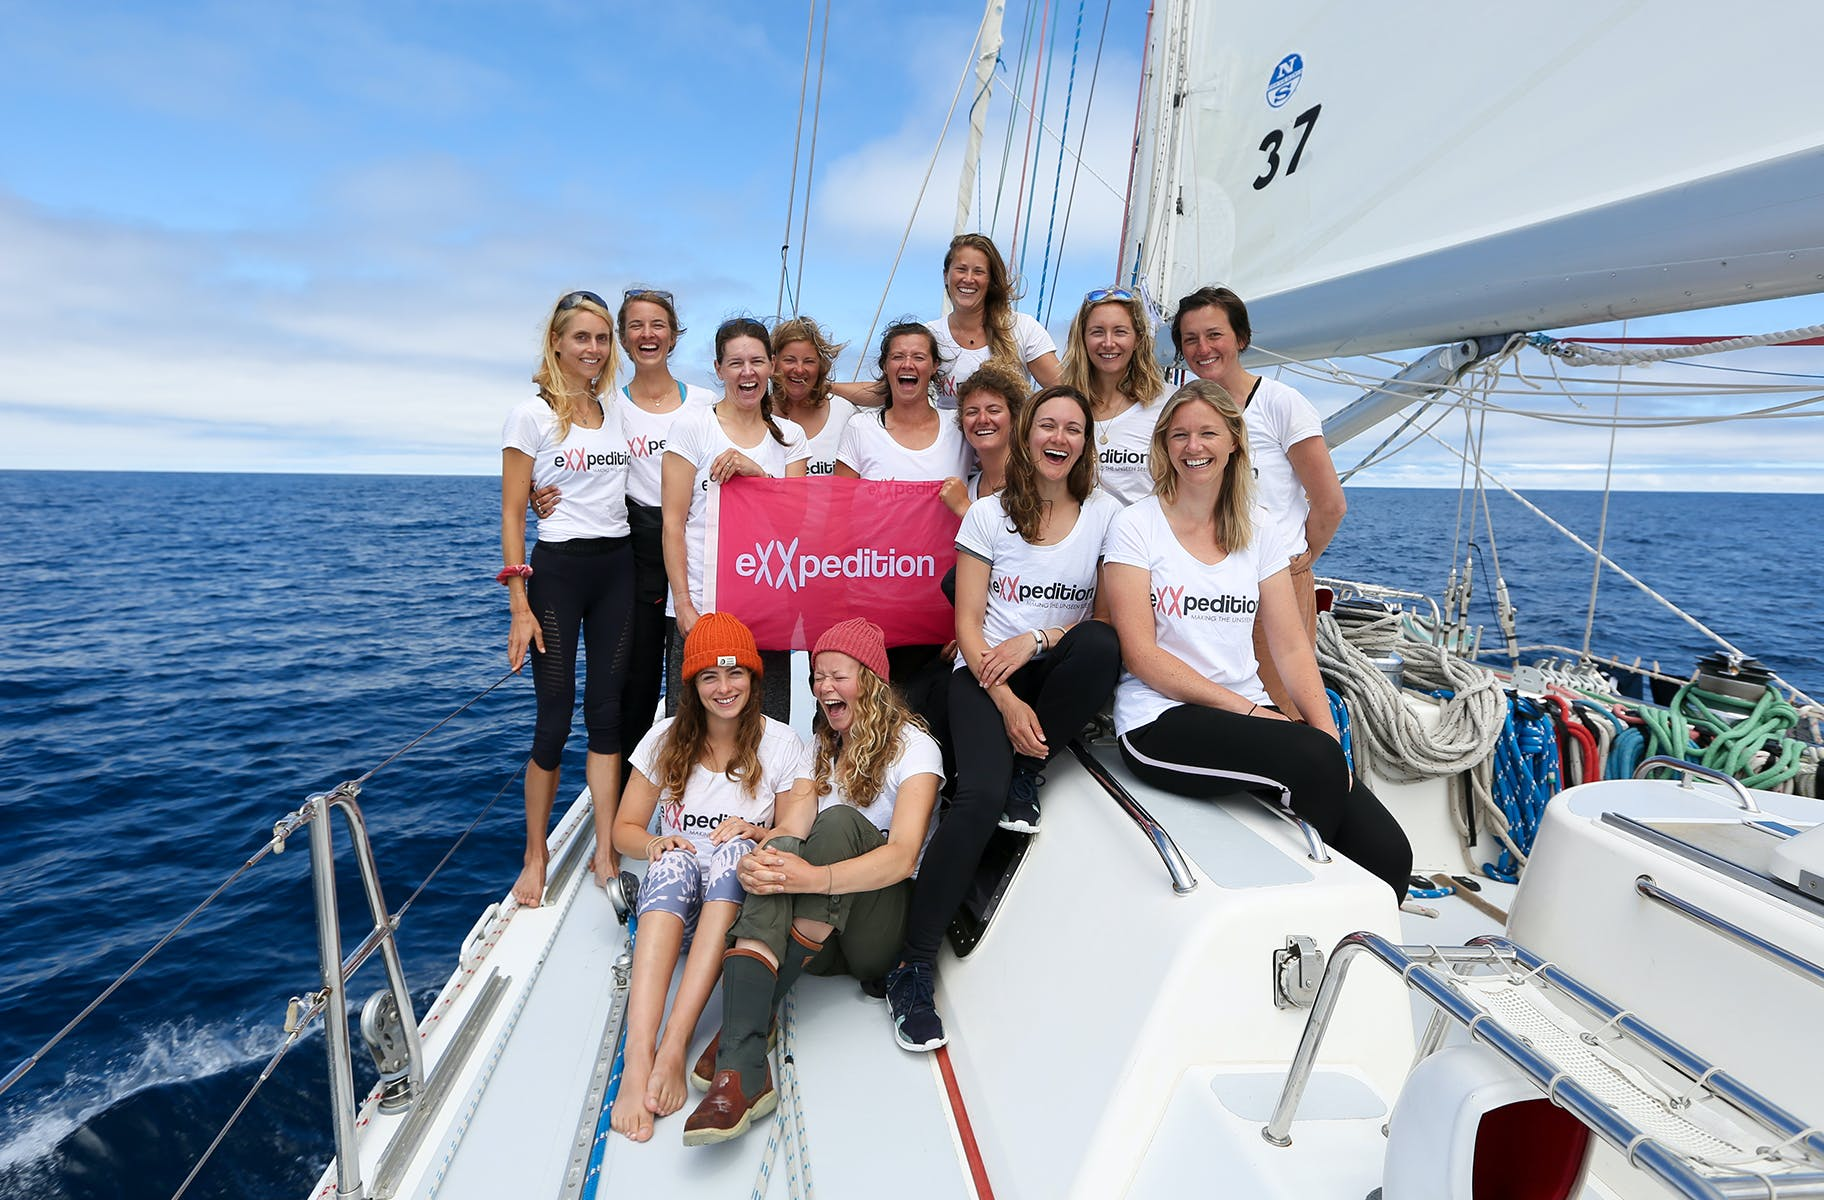 The women of eXXpedition, pictured on their boat in the ocean.